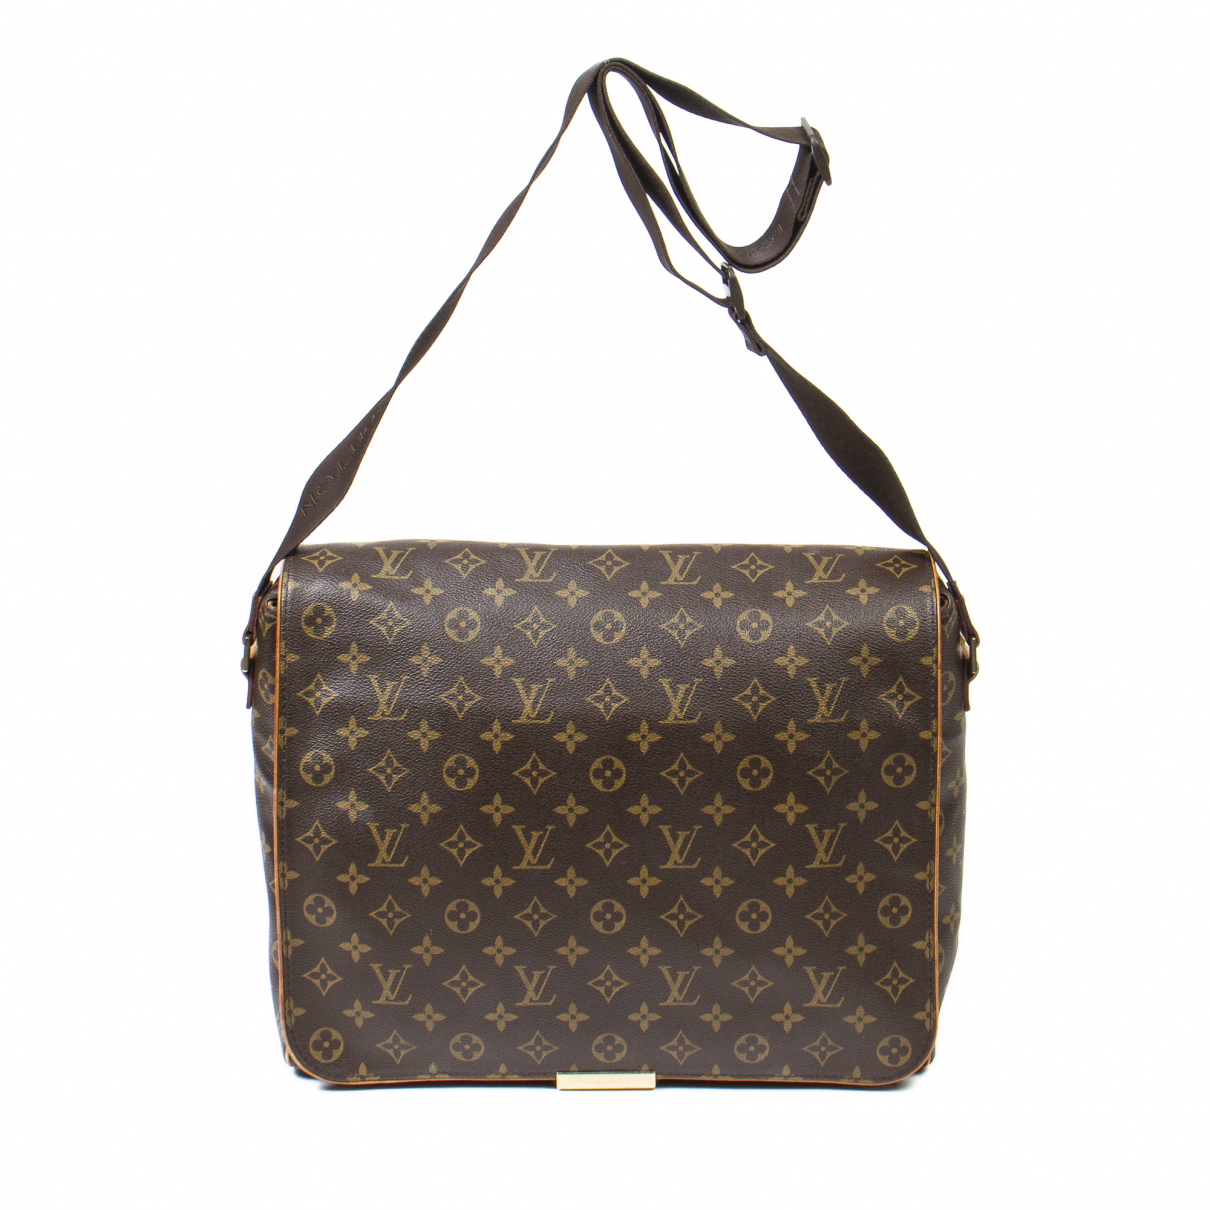 Louis Vuitton \N Handtasche in  Braun Leder